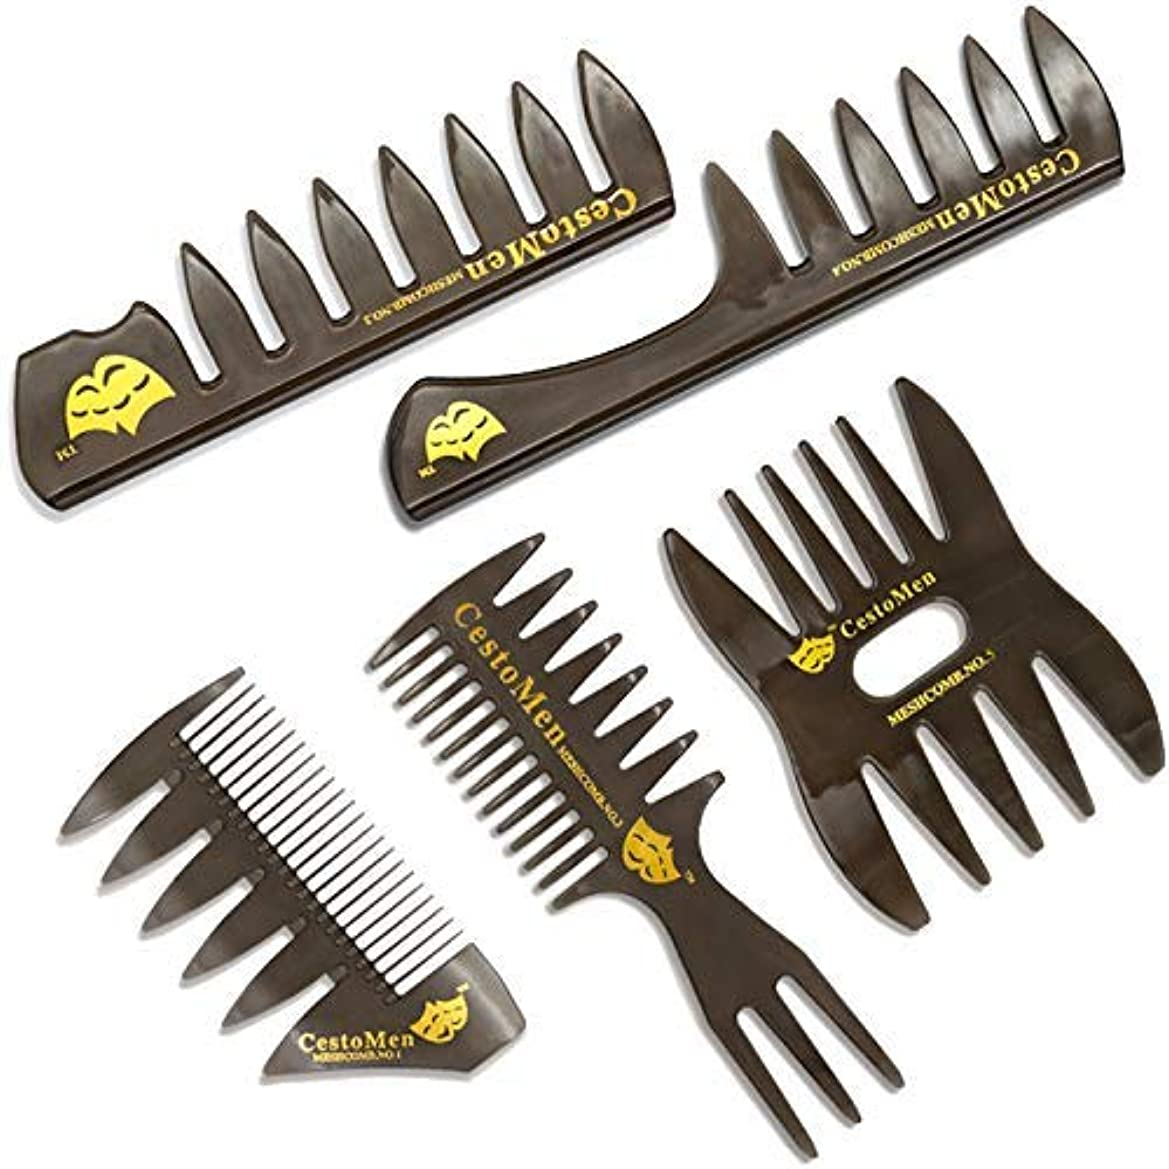 年そのような退屈させる5 PCS Hair Comb Styling Set Barber Hairstylist Accessories - Professional Shaping & Teasing Wet Combs Tools, Anti...